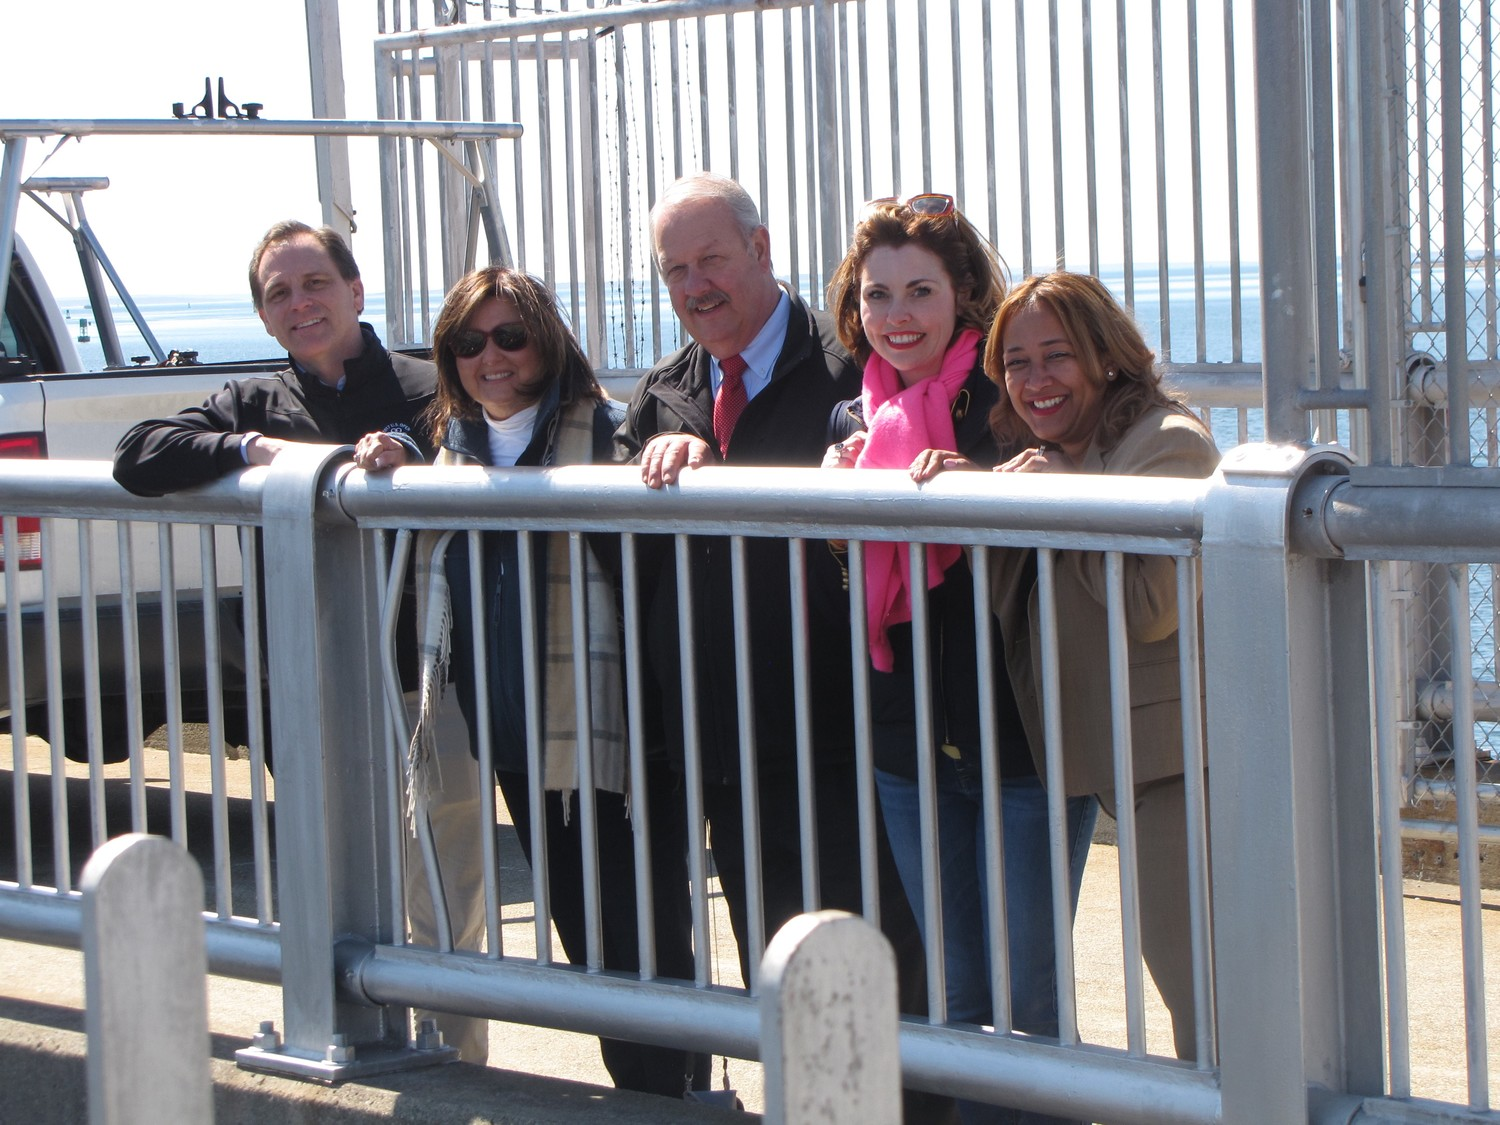 Freeport Mayor Robert Kennedy, center, was joined by Lynbrook Deputy Mayor Hilary Becker, far left, Plandome Manor Mayor Barbara Donno, Town of Hemstead Councilwoman Erin King Sweeney and Freeport Trustee Carmen Piñeyro on a tour of the New Bedford Hurricane Protection Barrier in Masschusetts on Monday.